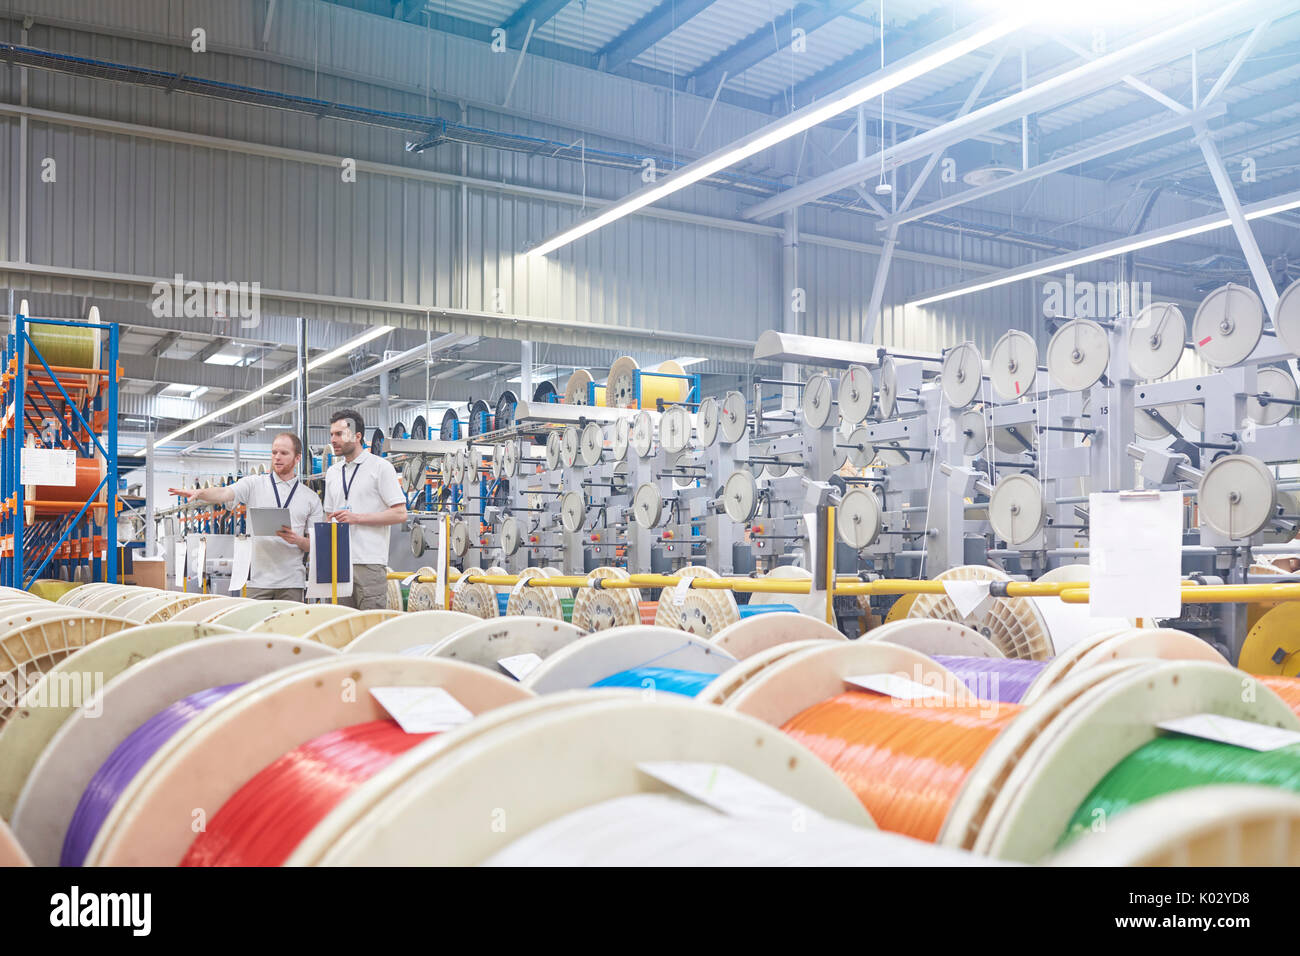 Male supervisor and worker checking inventory behind multicolor spools in fiber optics factory - Stock Image